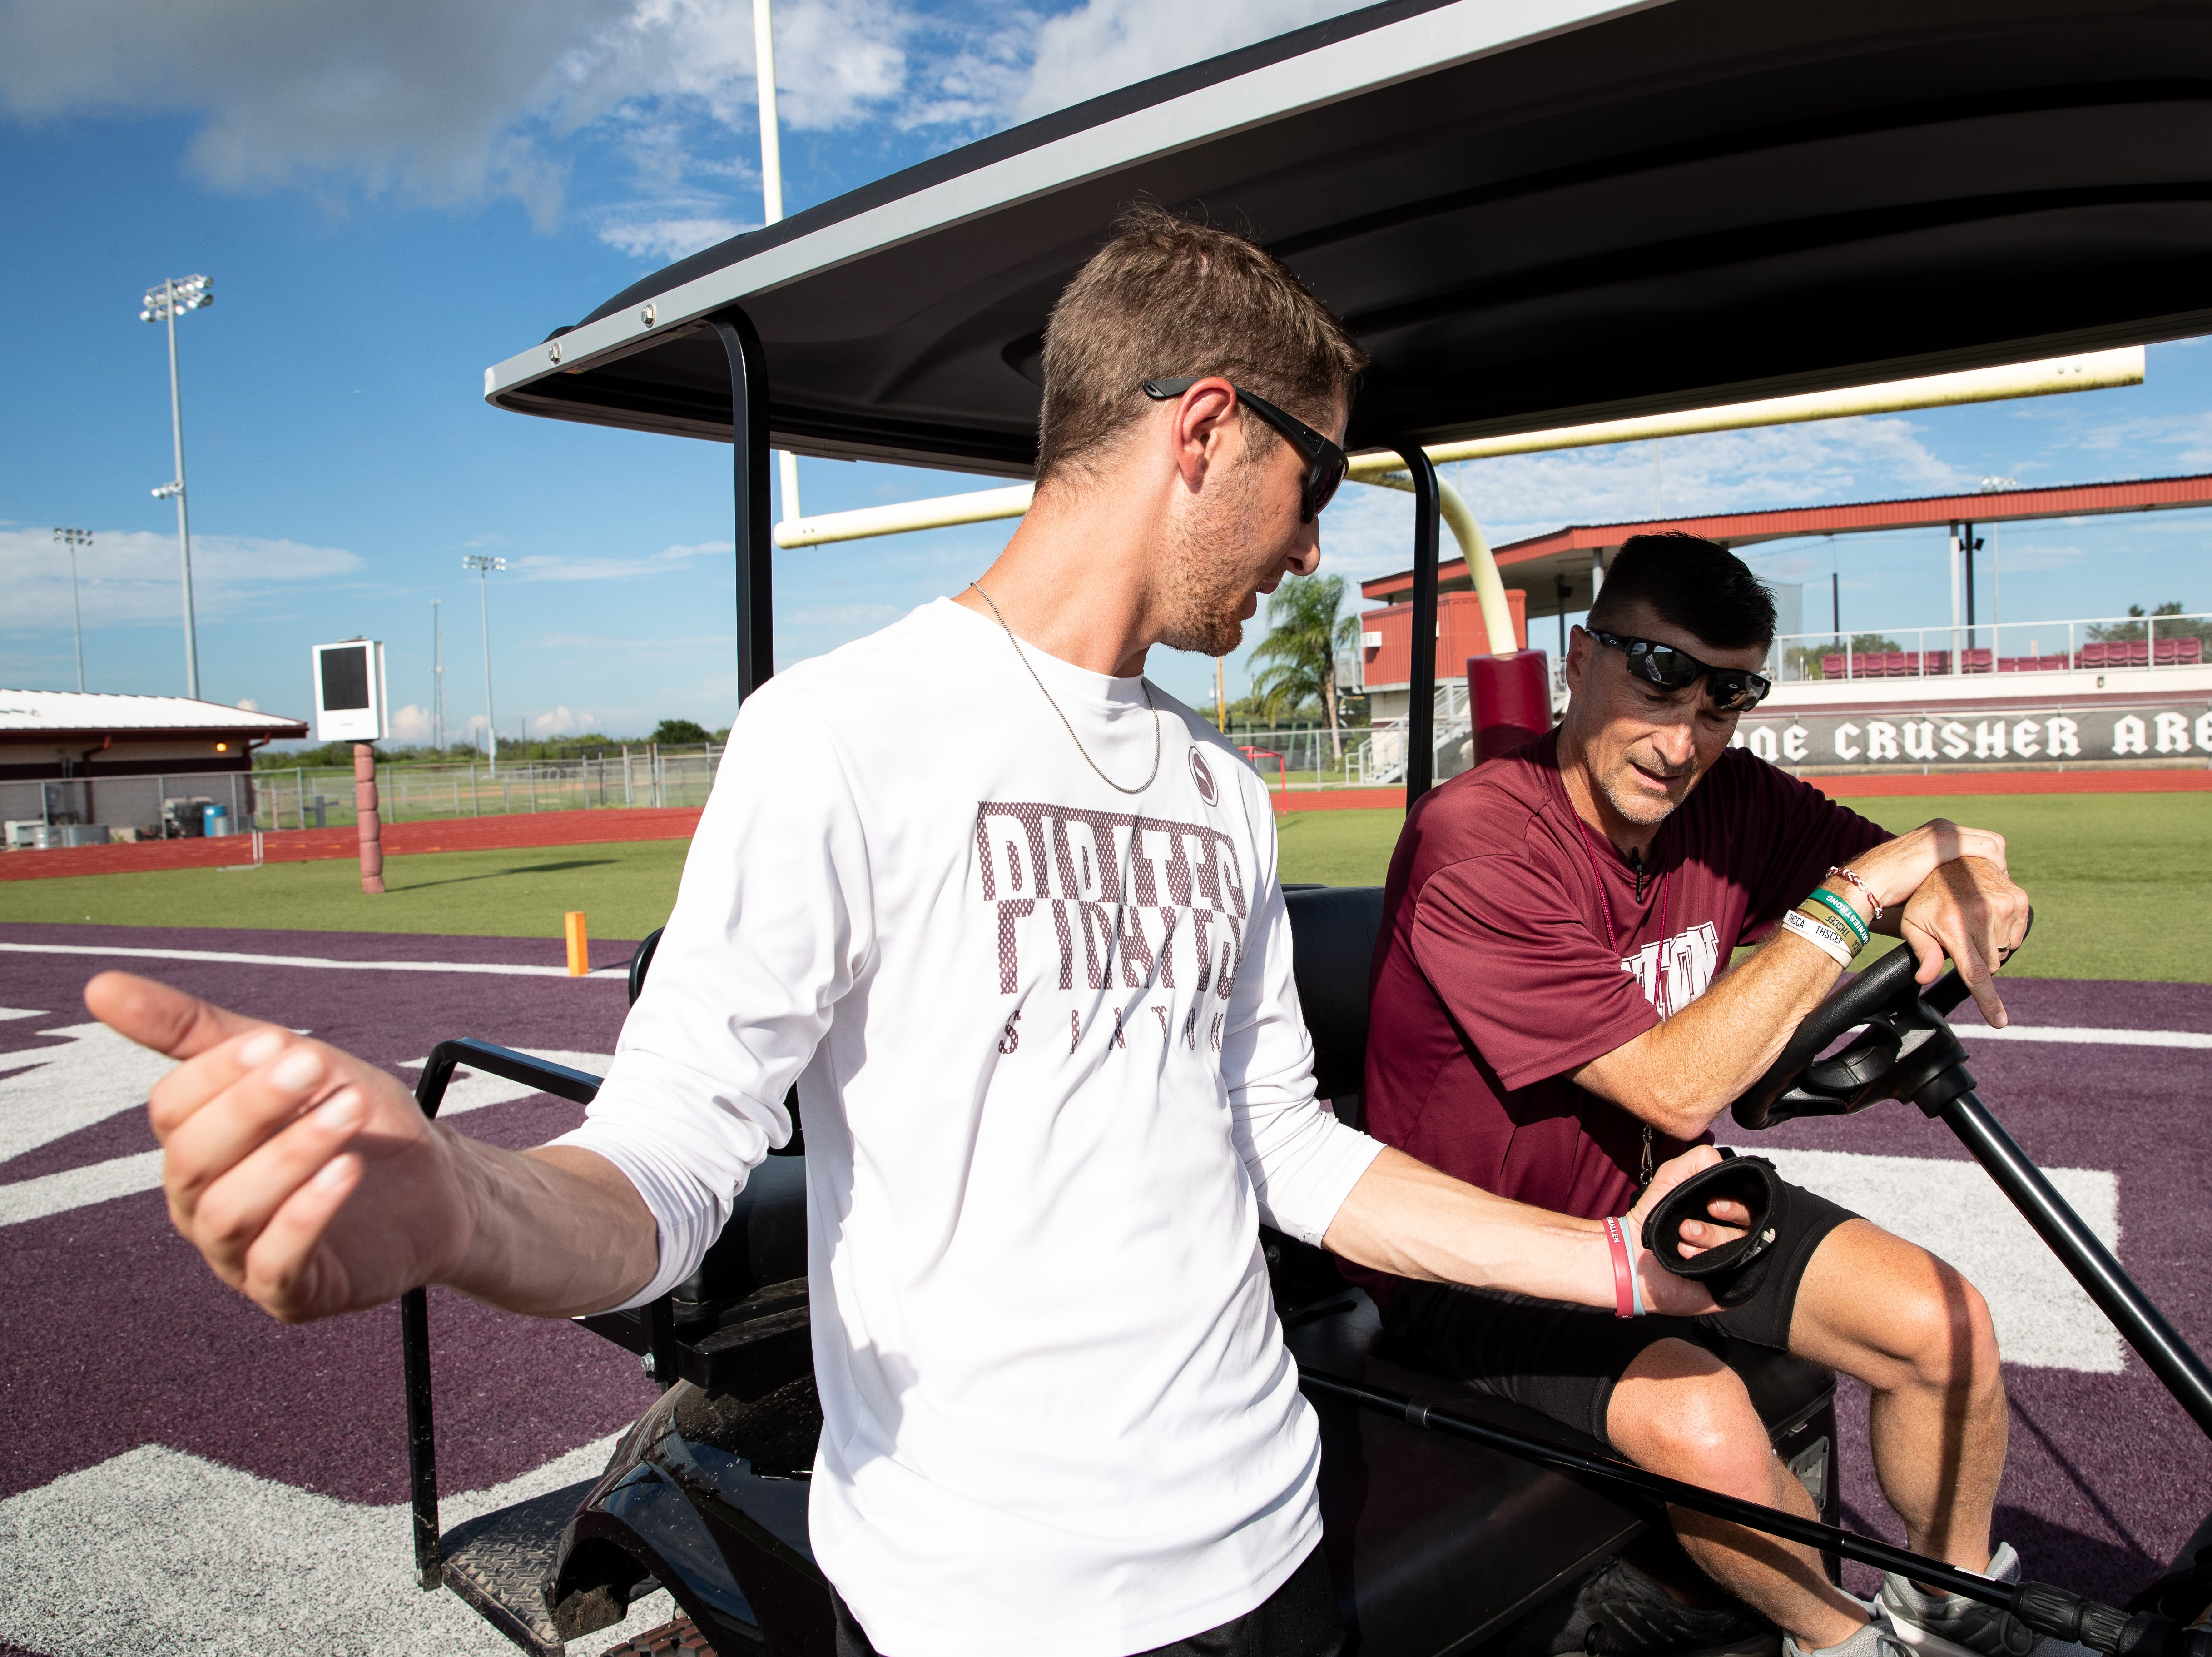 wide receiver coach Brian Allen checks a play with his Tom Allen head coach of the Sinton football during practice at Sinton High School on Tuesday, Sept. 18, 2018. Allen is suffering from a rare neurological disease that has him in a cart during games and practices